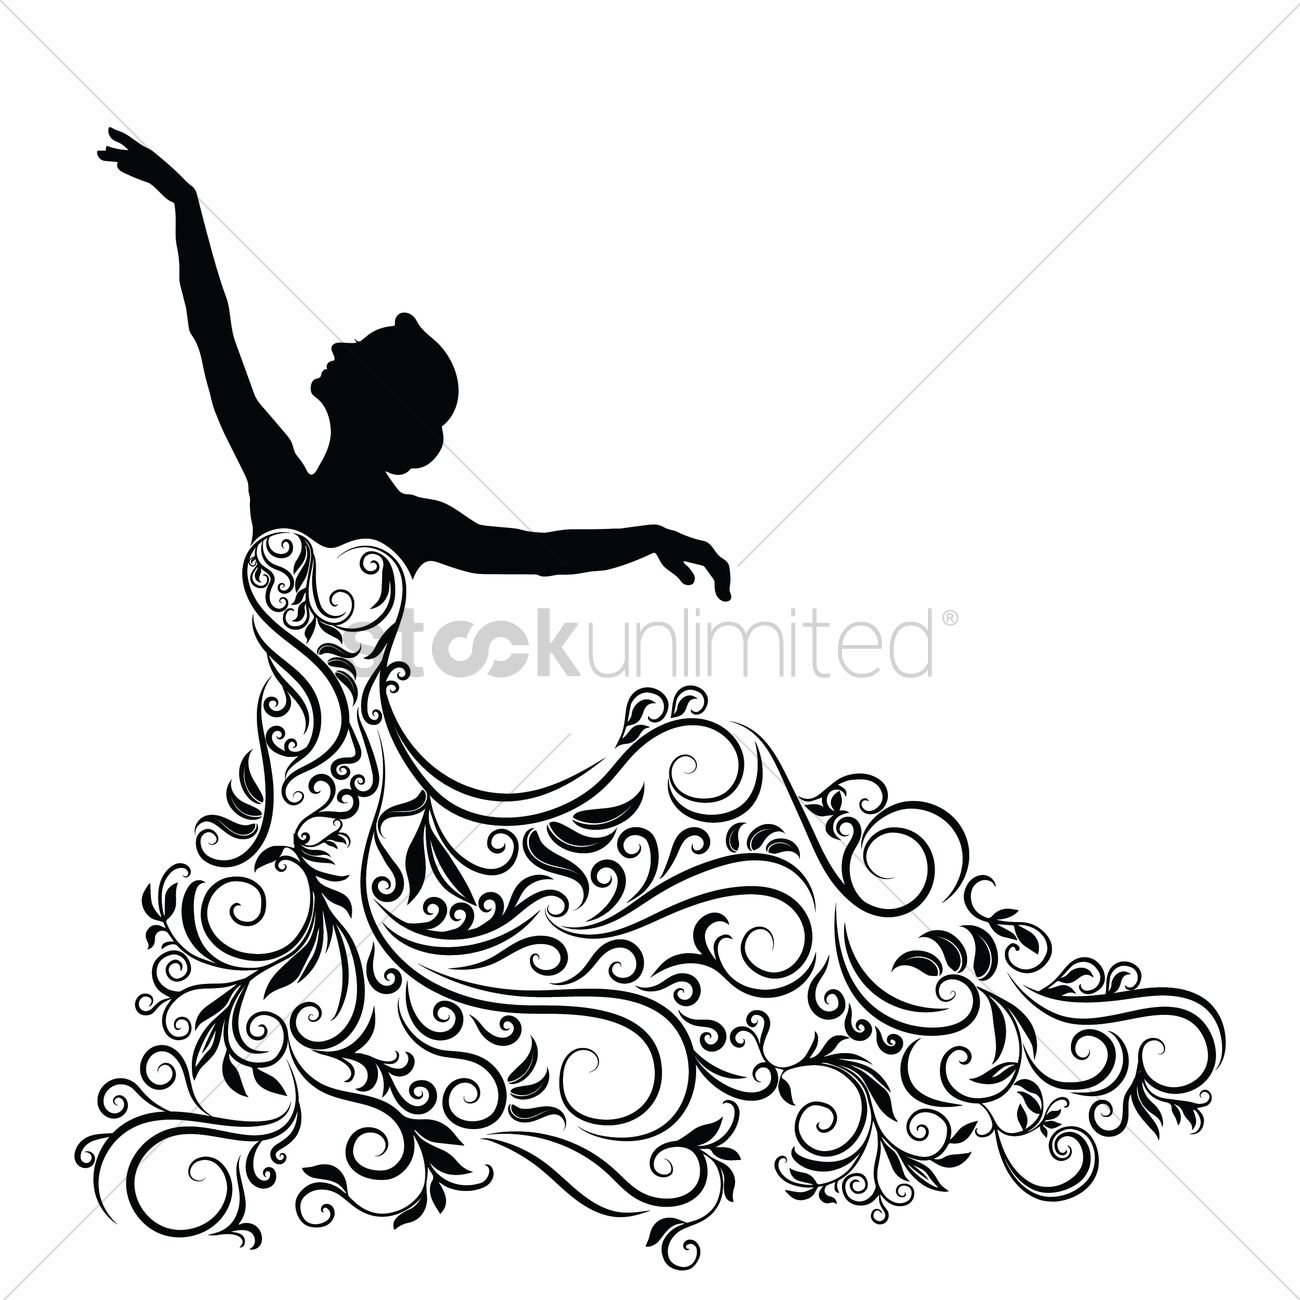 Silhouette Of Woman In An Elegent Dress Vector Image